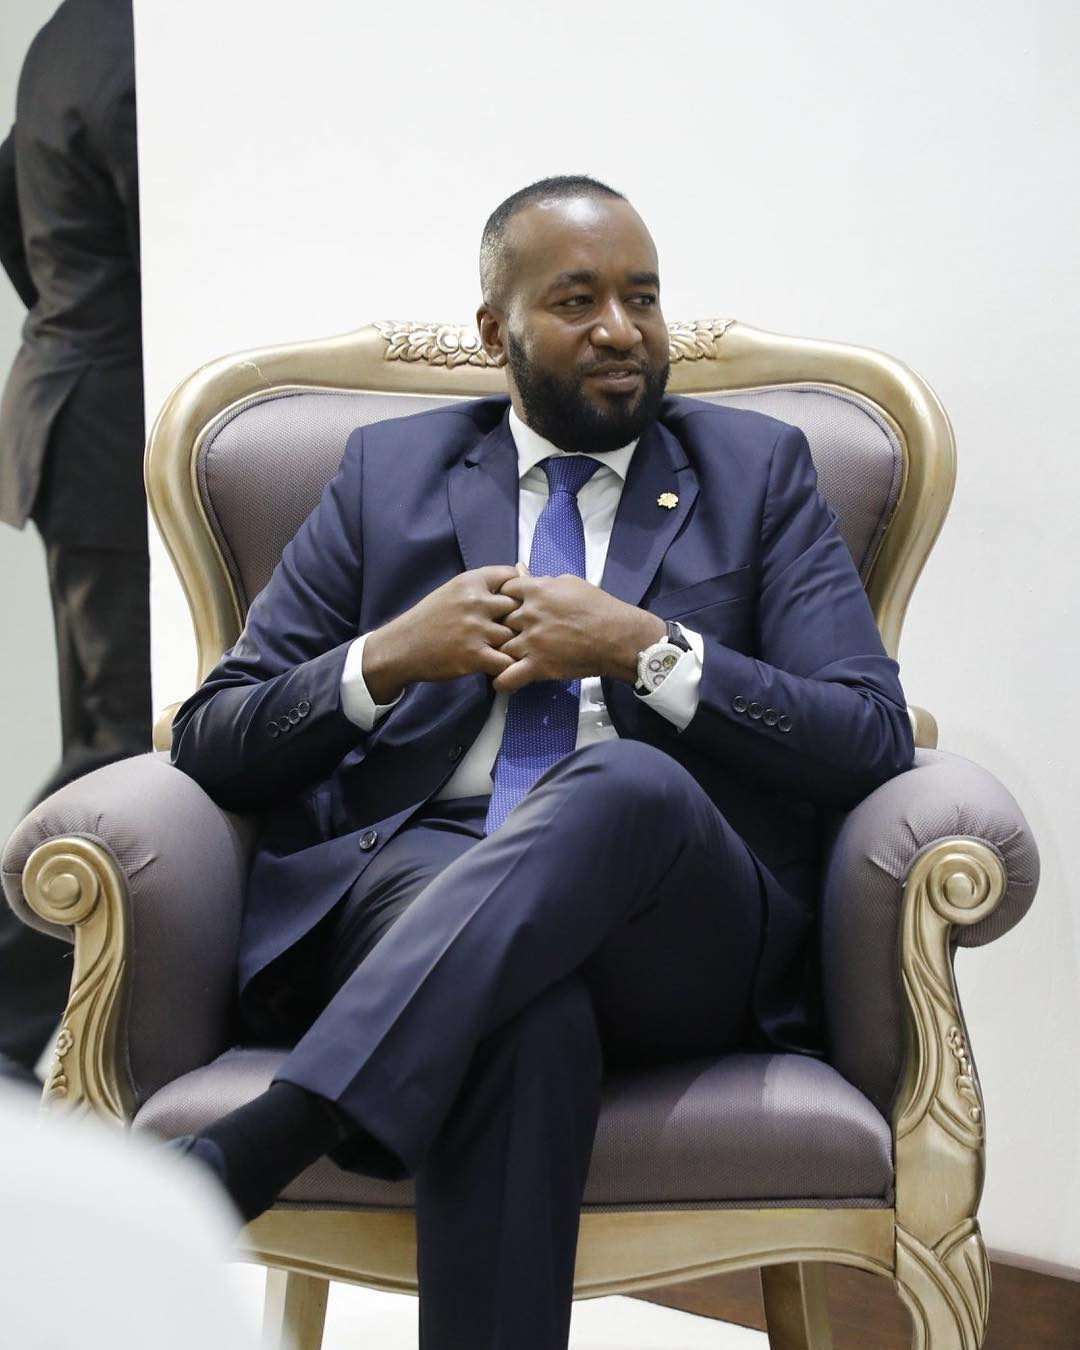 38466248 657658321286581 7923287695508373504 n - Mr steal your girl! Tantalizing photos of Governor Joho